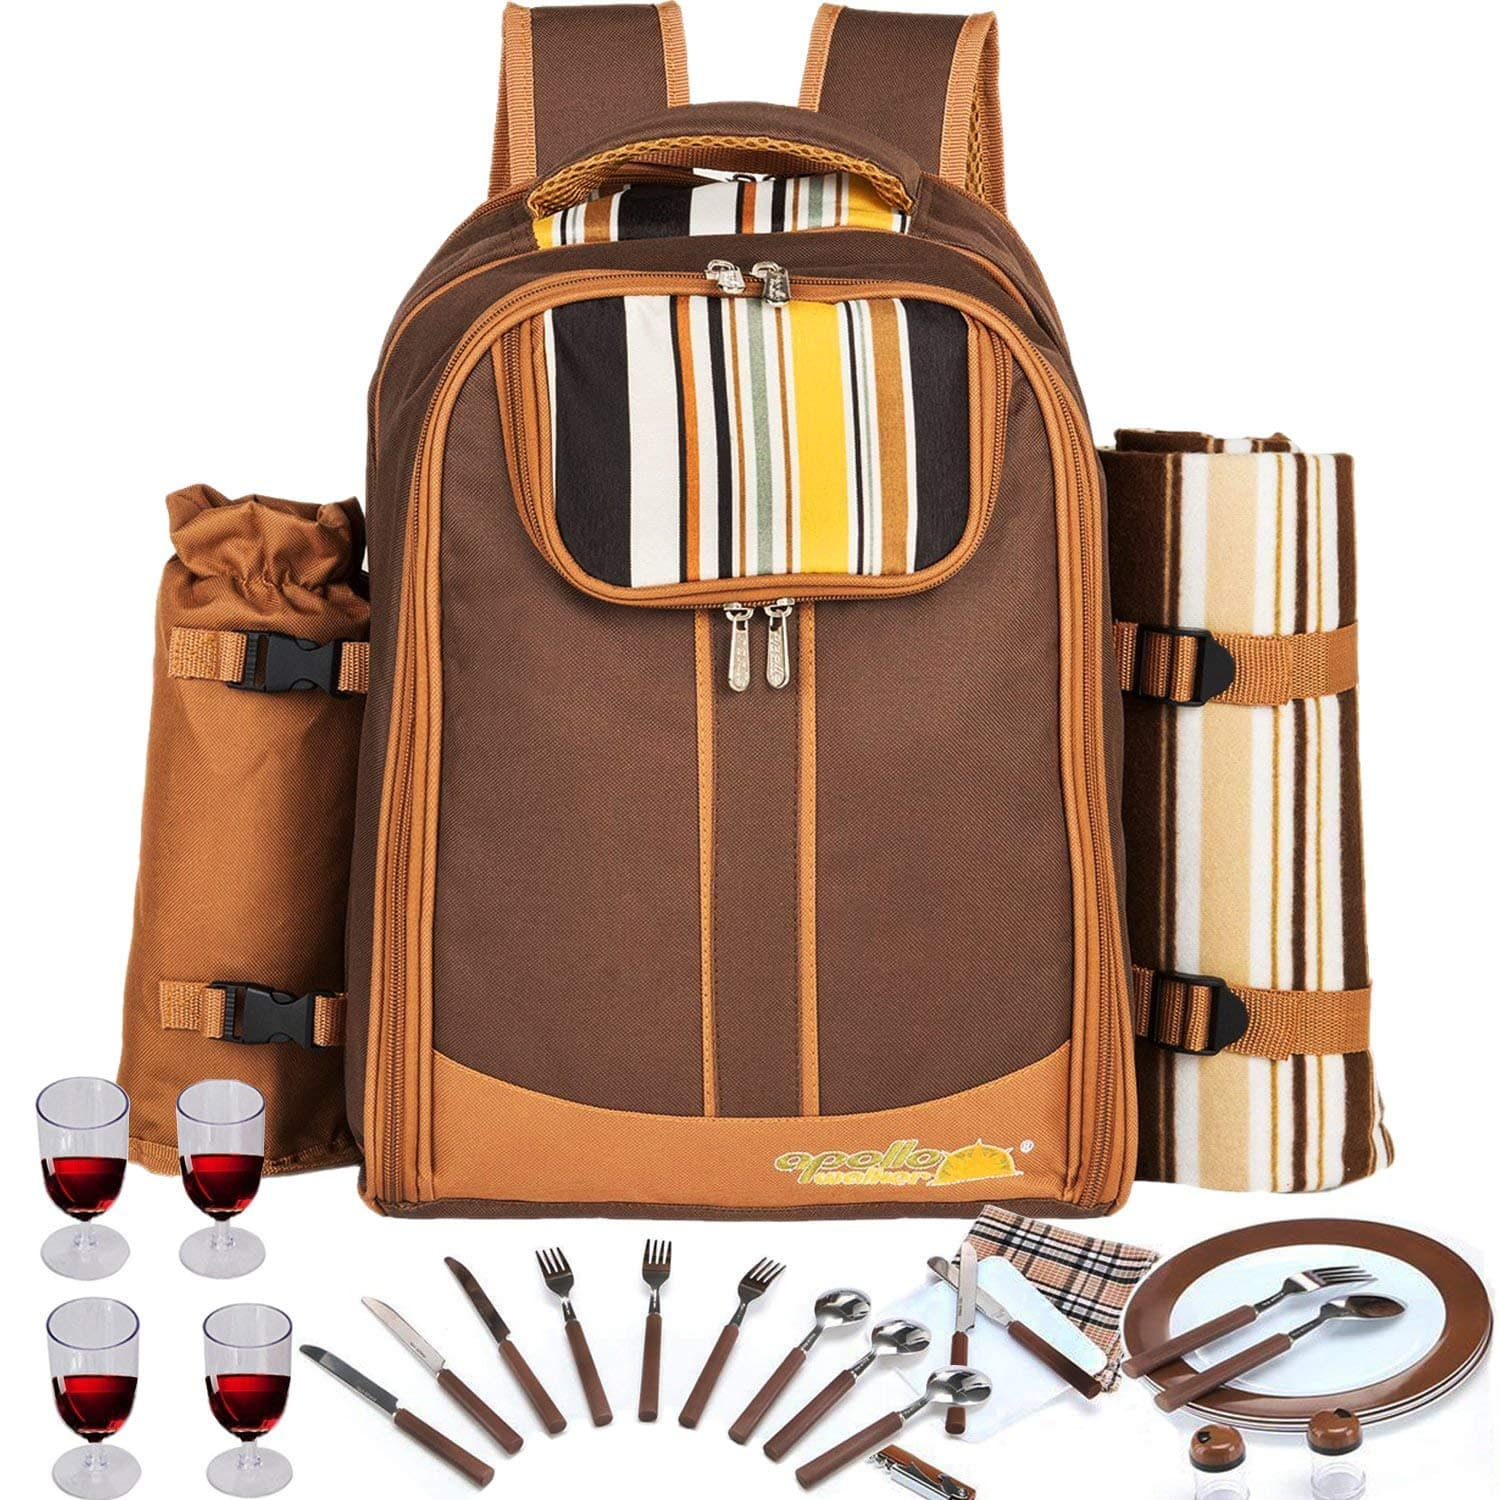 Picnic Backpack Bag for 4 Person With Cooler Compartment, Detachable Bottle/Wine Holder, Fleece Blanket, Plates and Cutlery Set $29.99 AC FS Amazon Prime